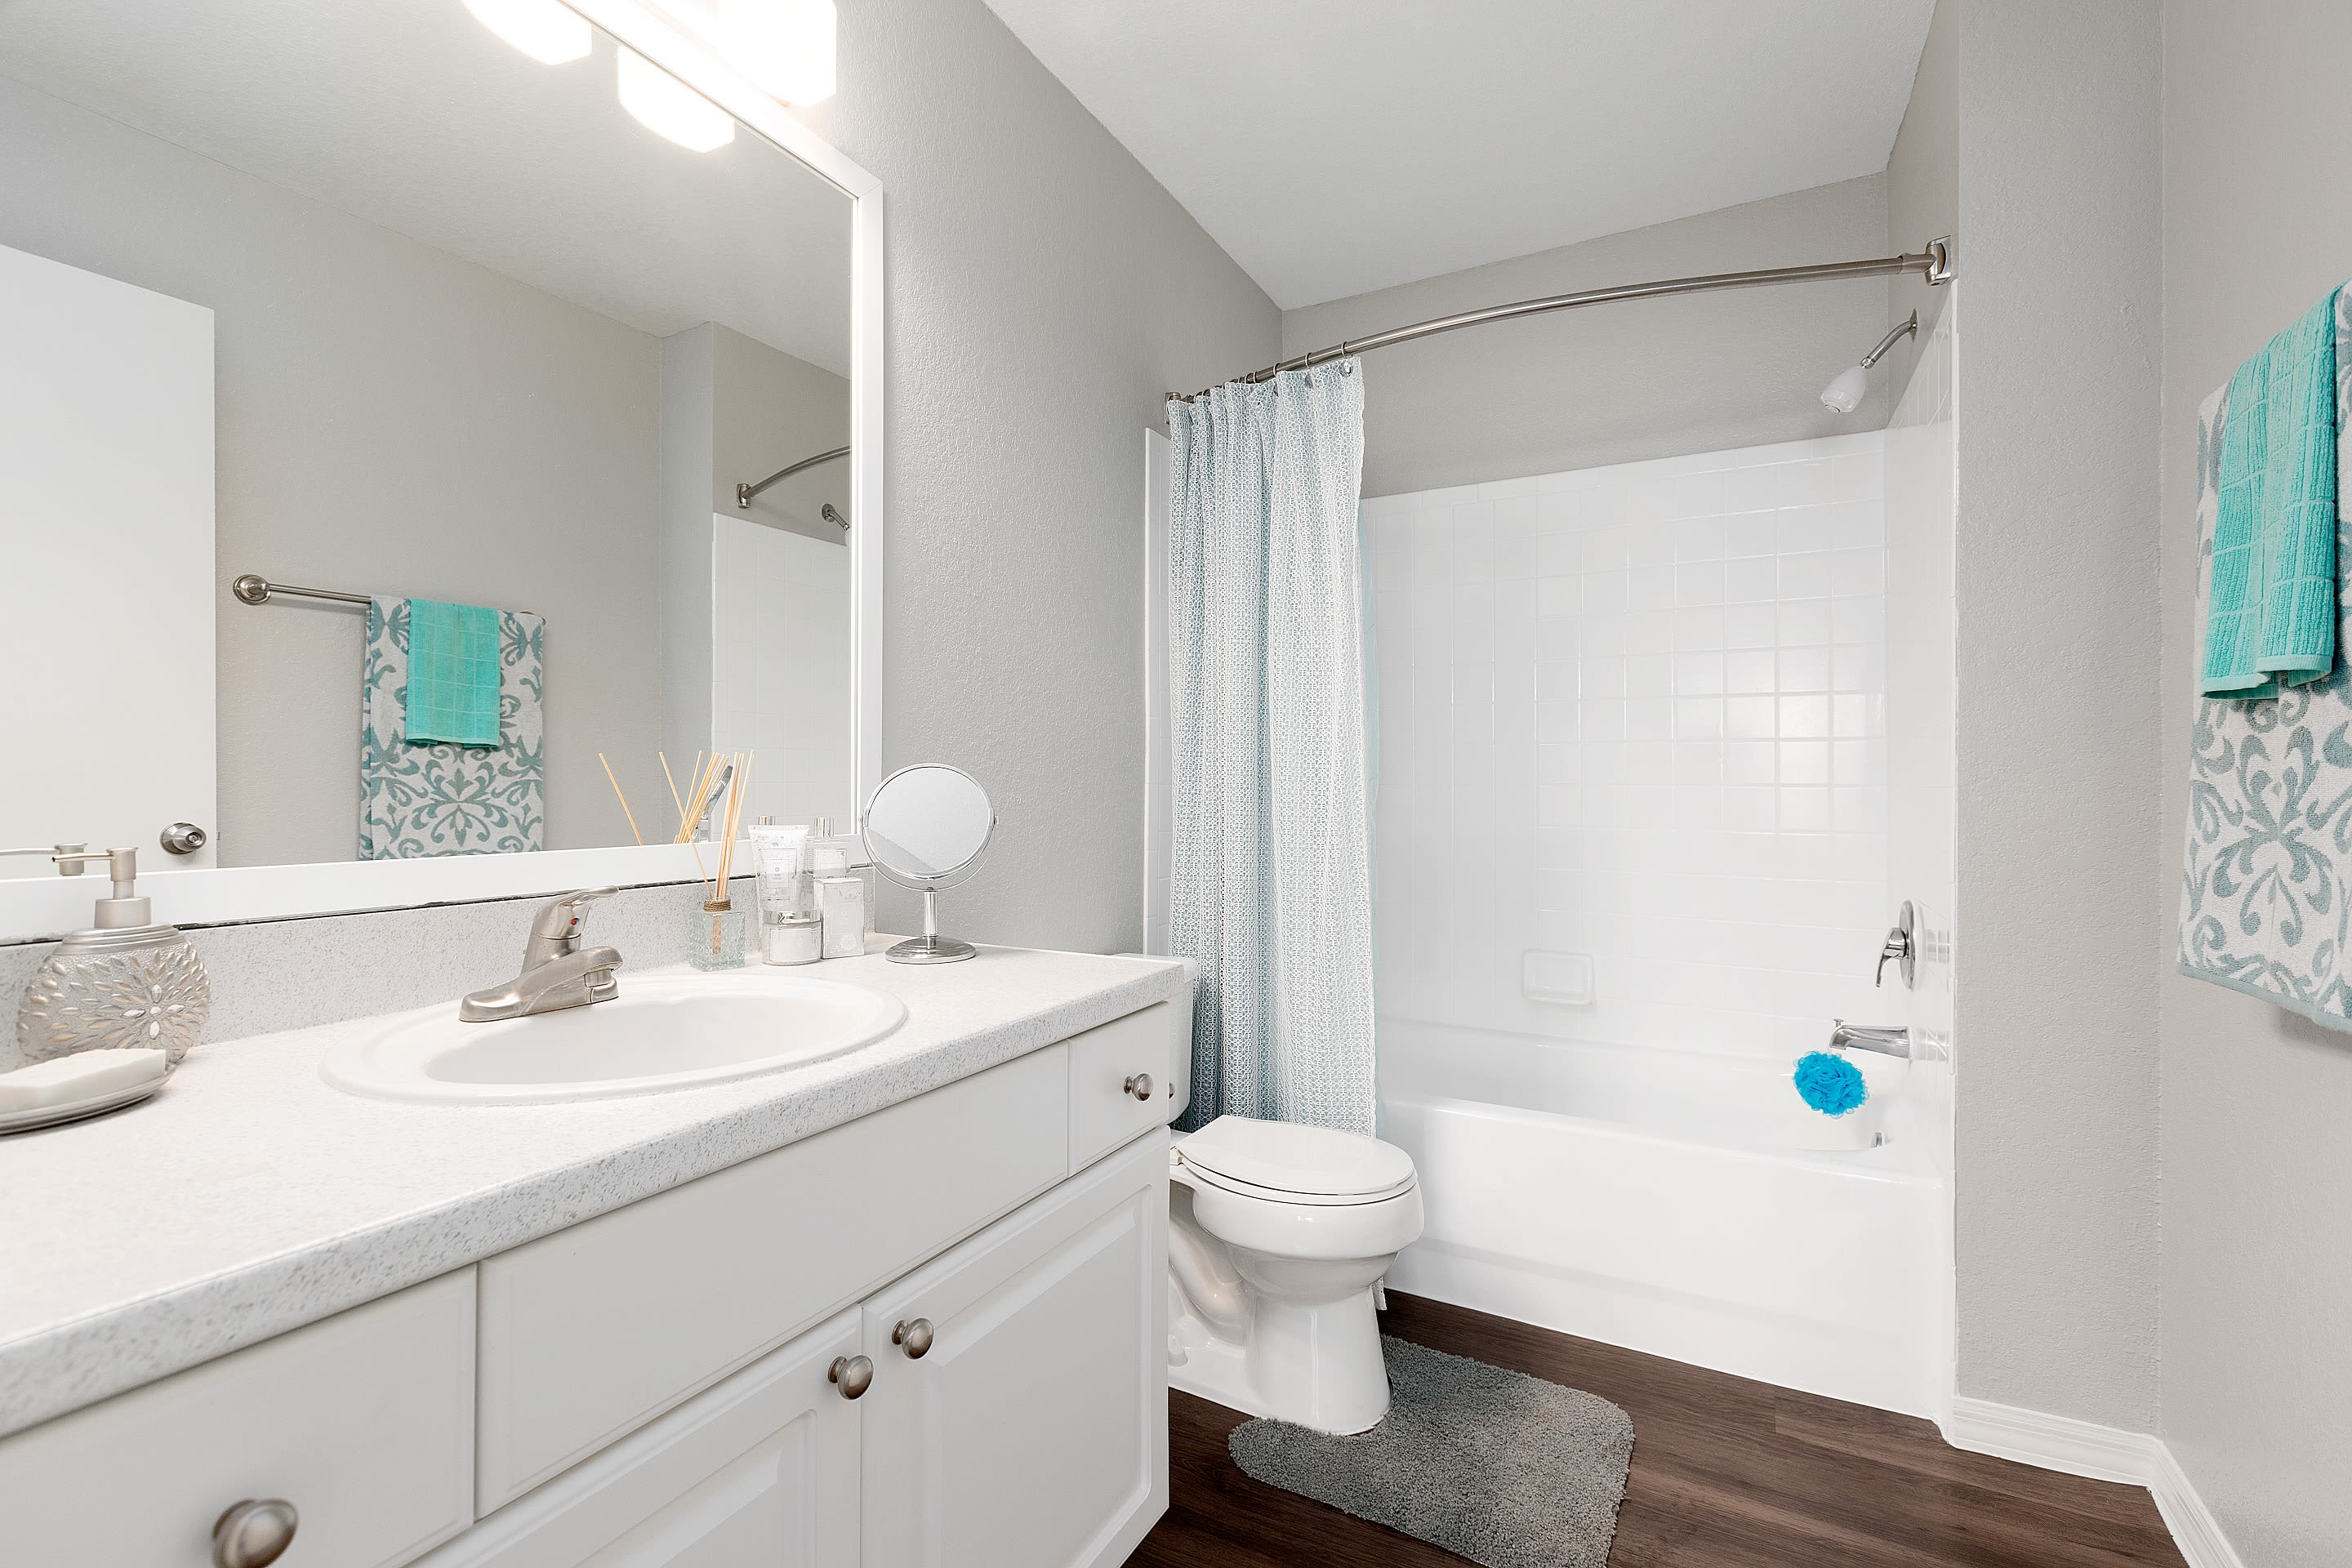 renovated apartments at The Avenue in Ocoee